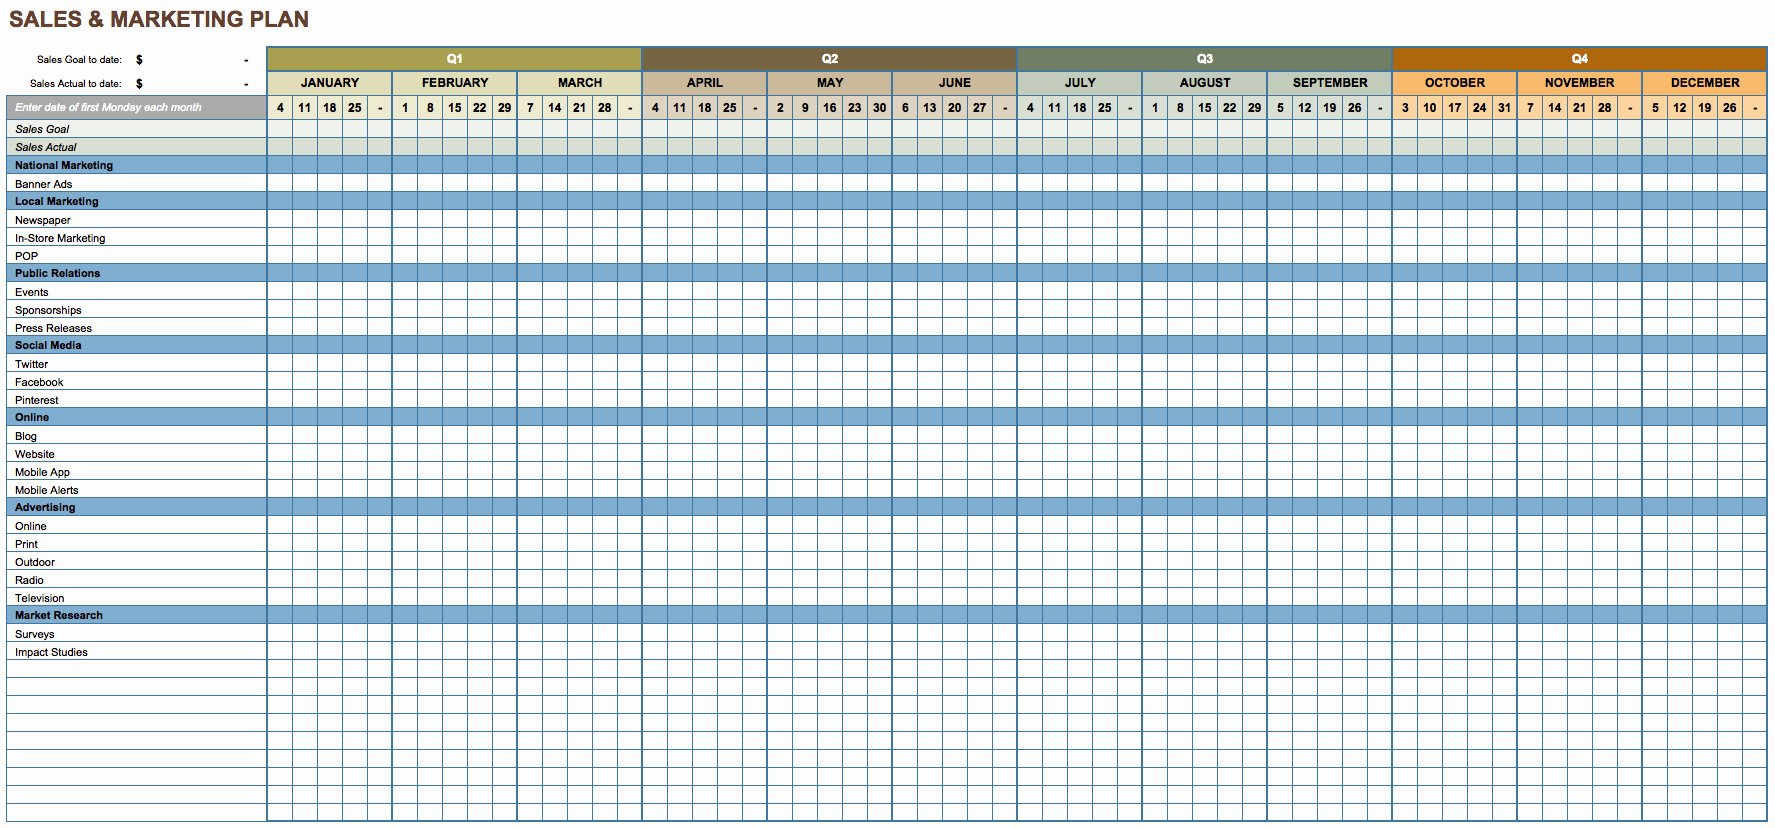 Strategic Plan Template Excel New Free Marketing Plan Templates for Excel Smartsheet